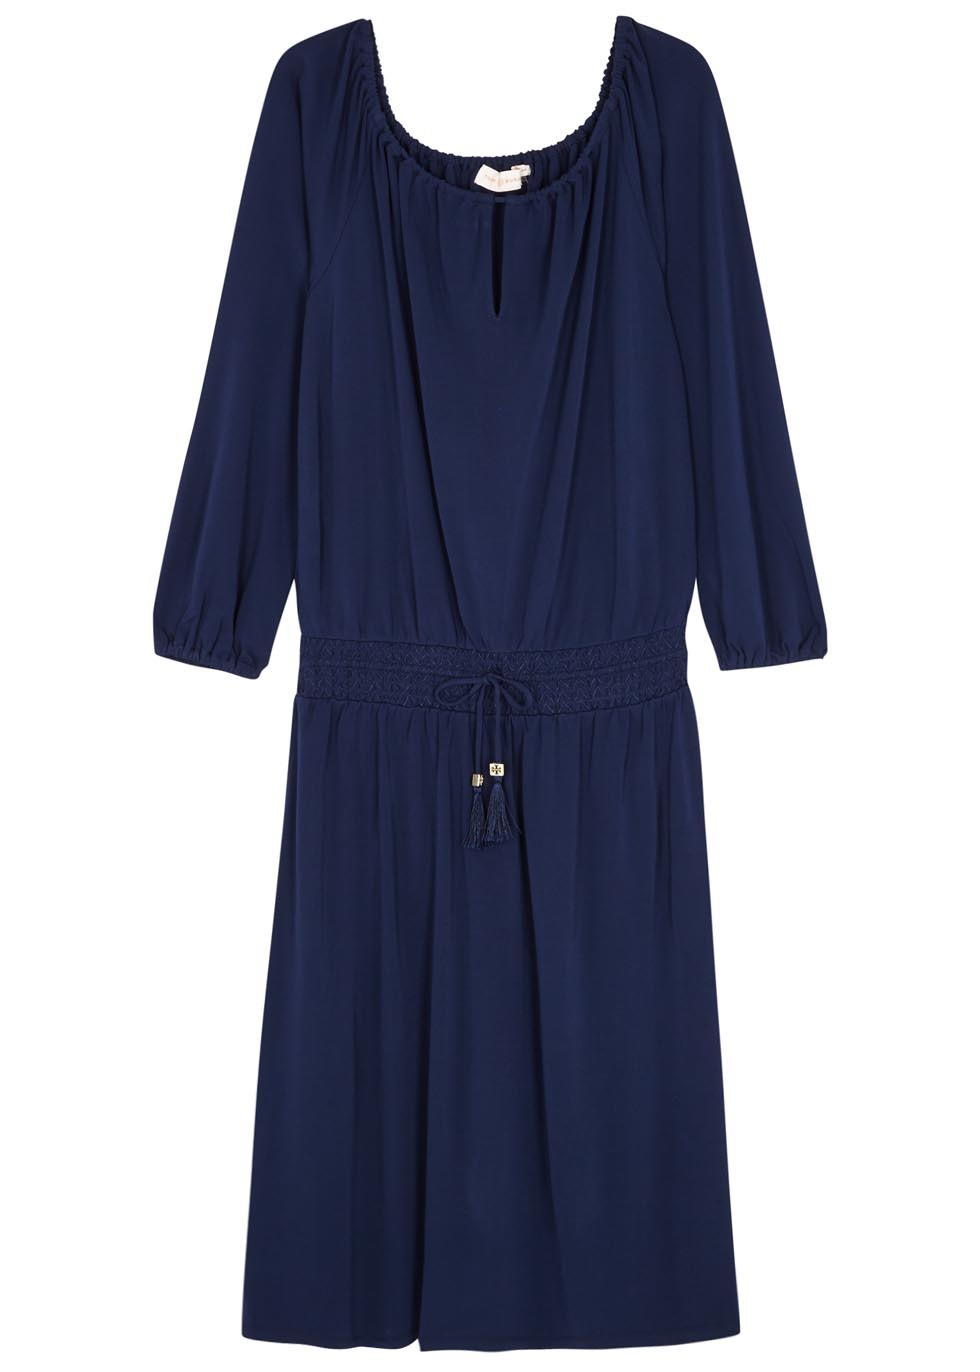 Kara Navy Smocked Jersey Dress - style: shift; neckline: round neck; fit: fitted at waist; pattern: plain; waist detail: belted waist/tie at waist/drawstring; predominant colour: navy; occasions: casual, creative work; length: just above the knee; fibres: viscose/rayon - 100%; sleeve length: 3/4 length; sleeve style: standard; pattern type: fabric; texture group: jersey - stretchy/drapey; season: s/s 2016; wardrobe: basic